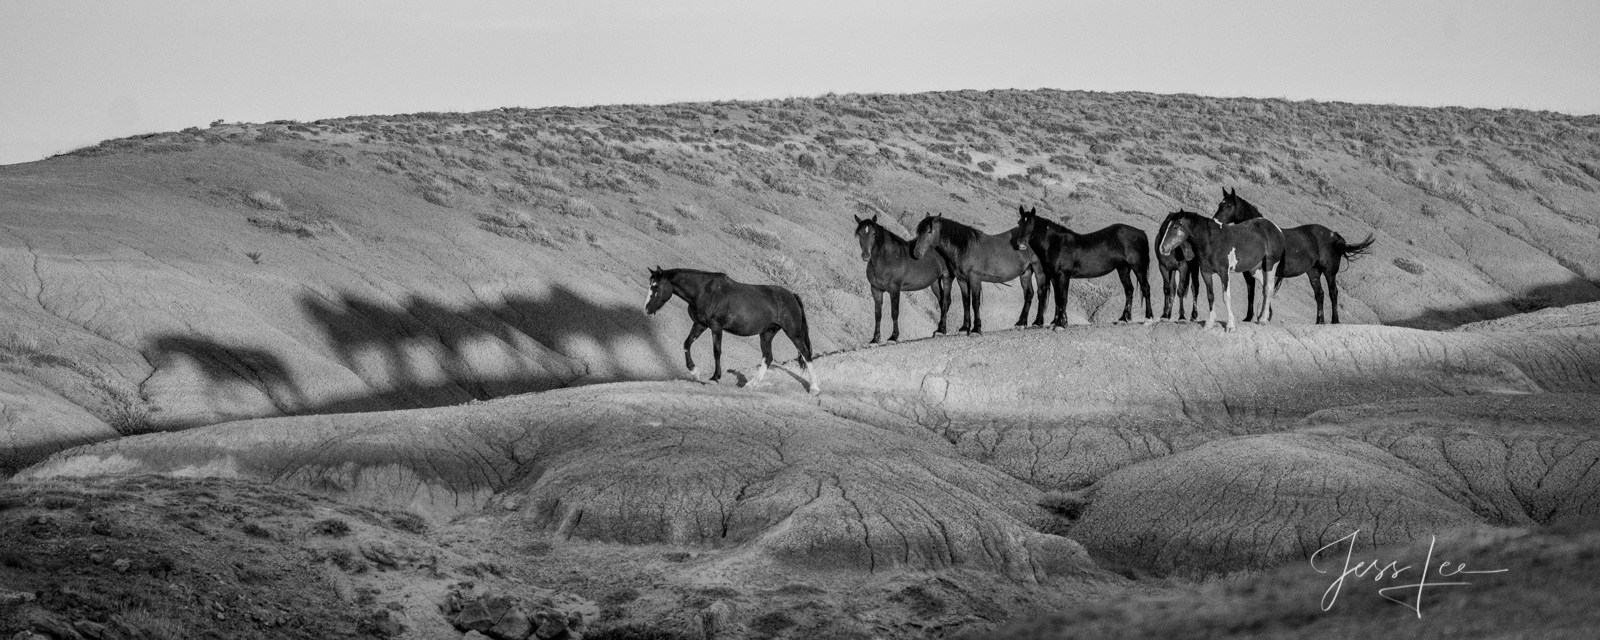 Fine Art Print of Wyoming Wild Horses and their shadow. Limited Edition of 250 Luxurious Prints.  Choose the style, size, and...